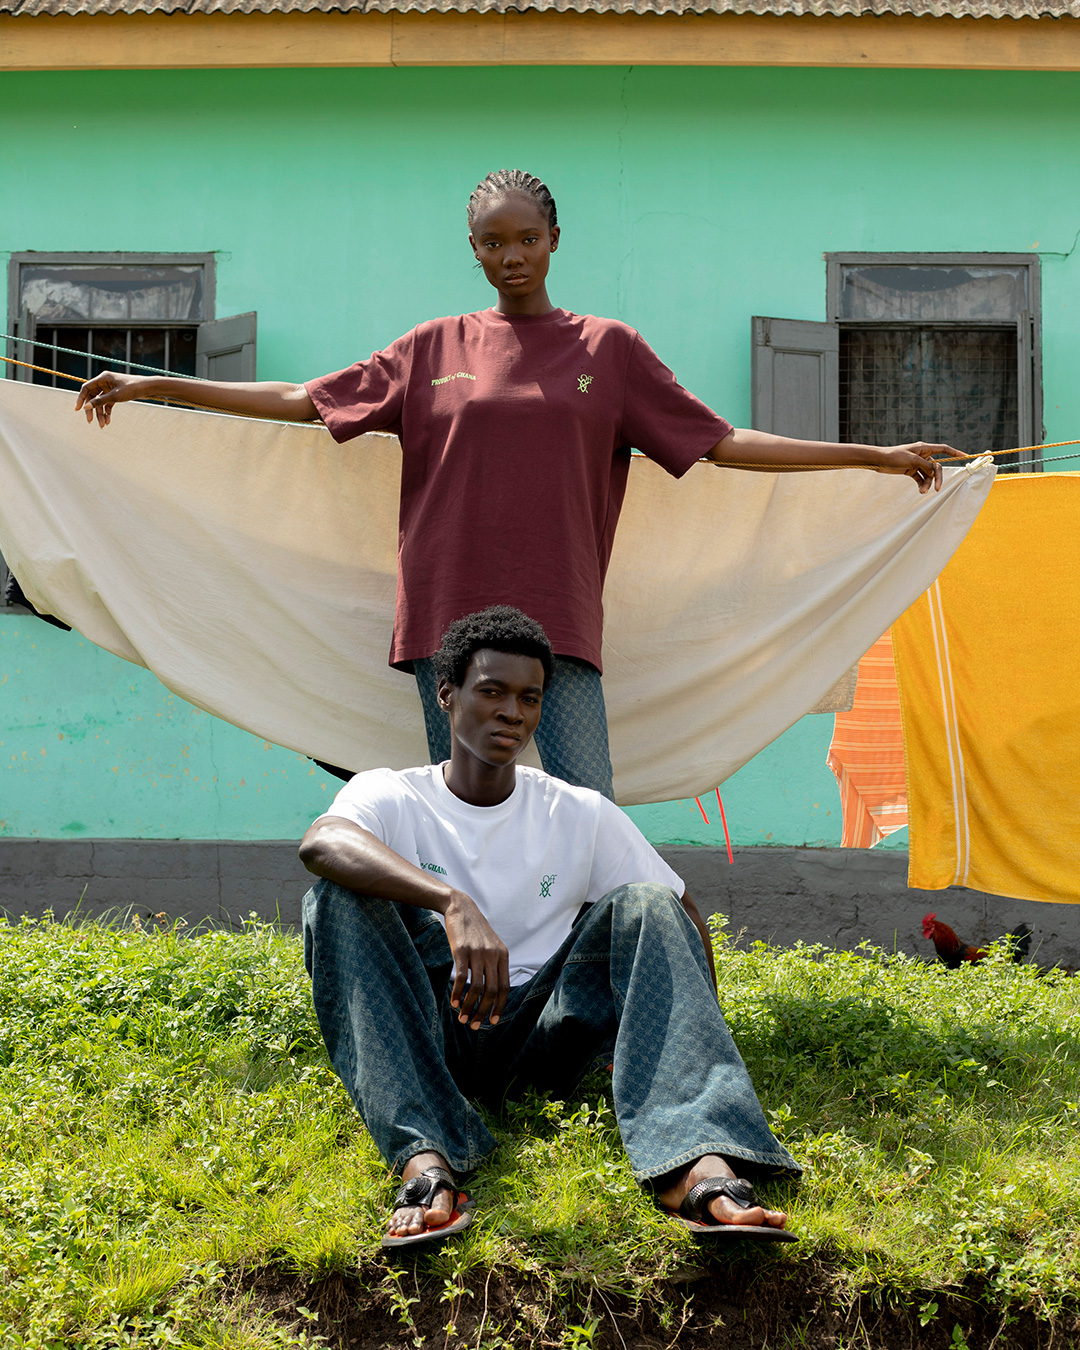 Daily Paper, Off-White, and Surf Ghana Launch Capsule Collection